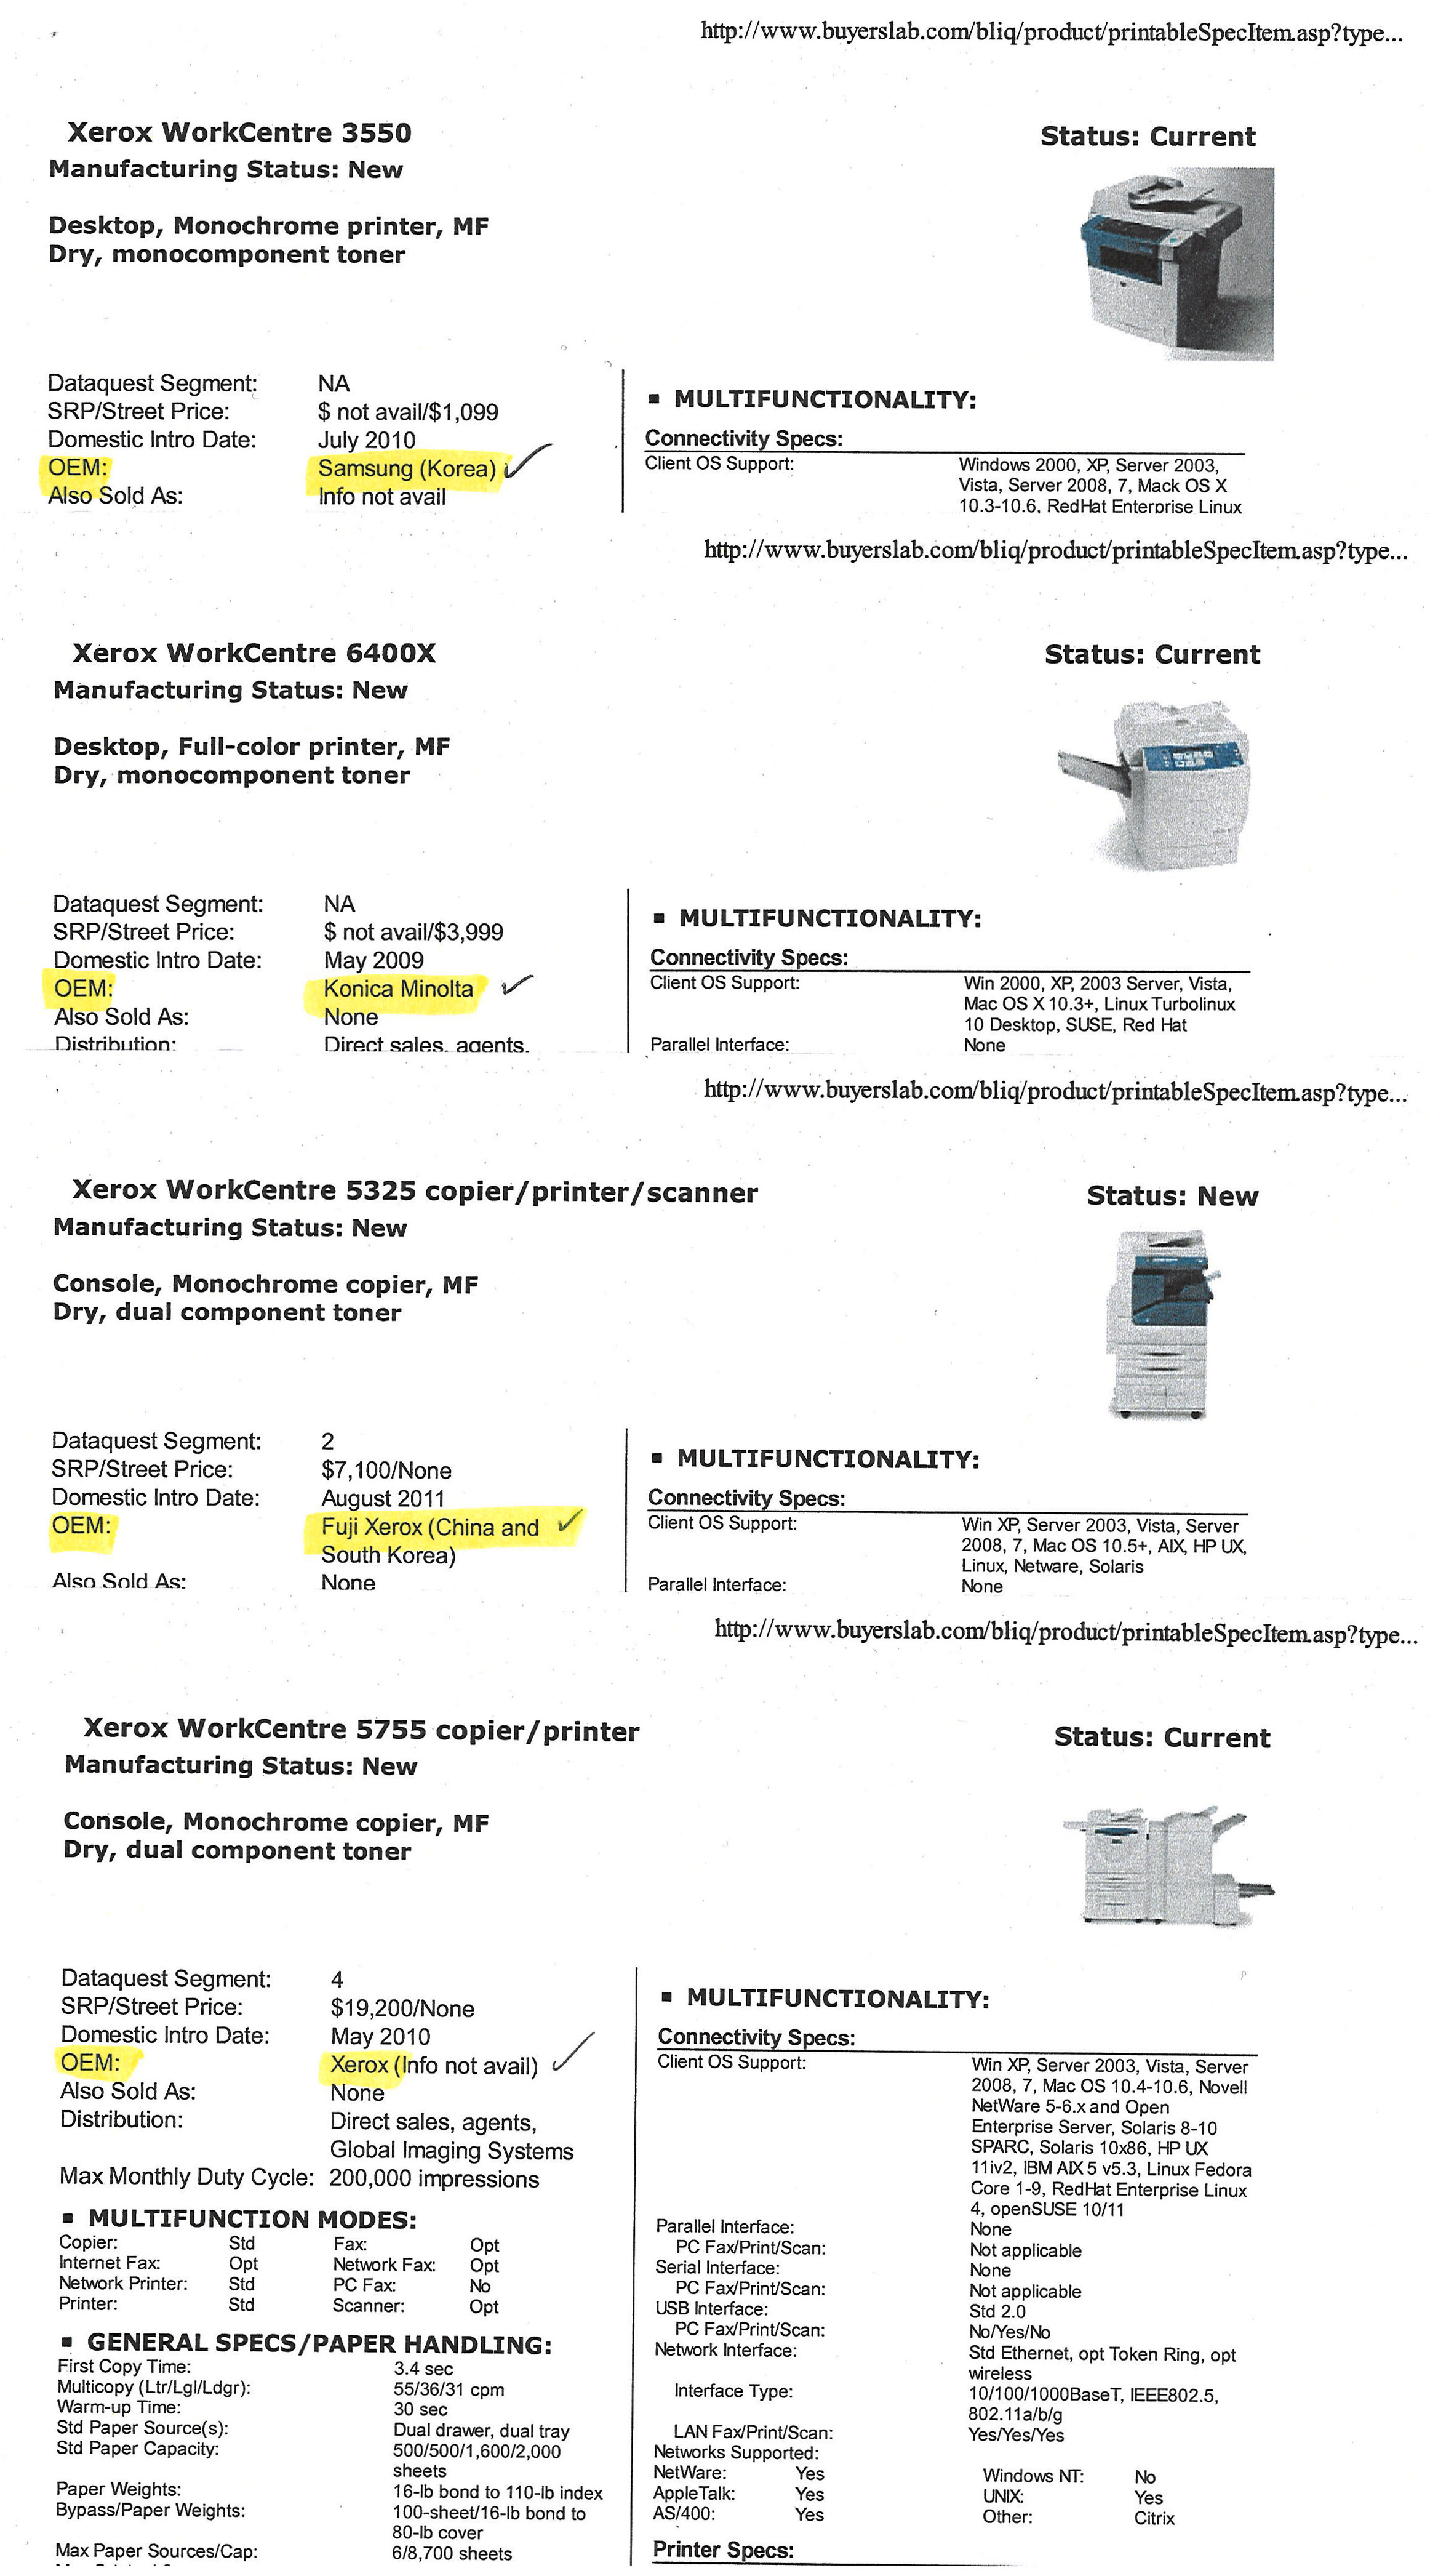 Sample Letter Of Intent To End Copier Lease